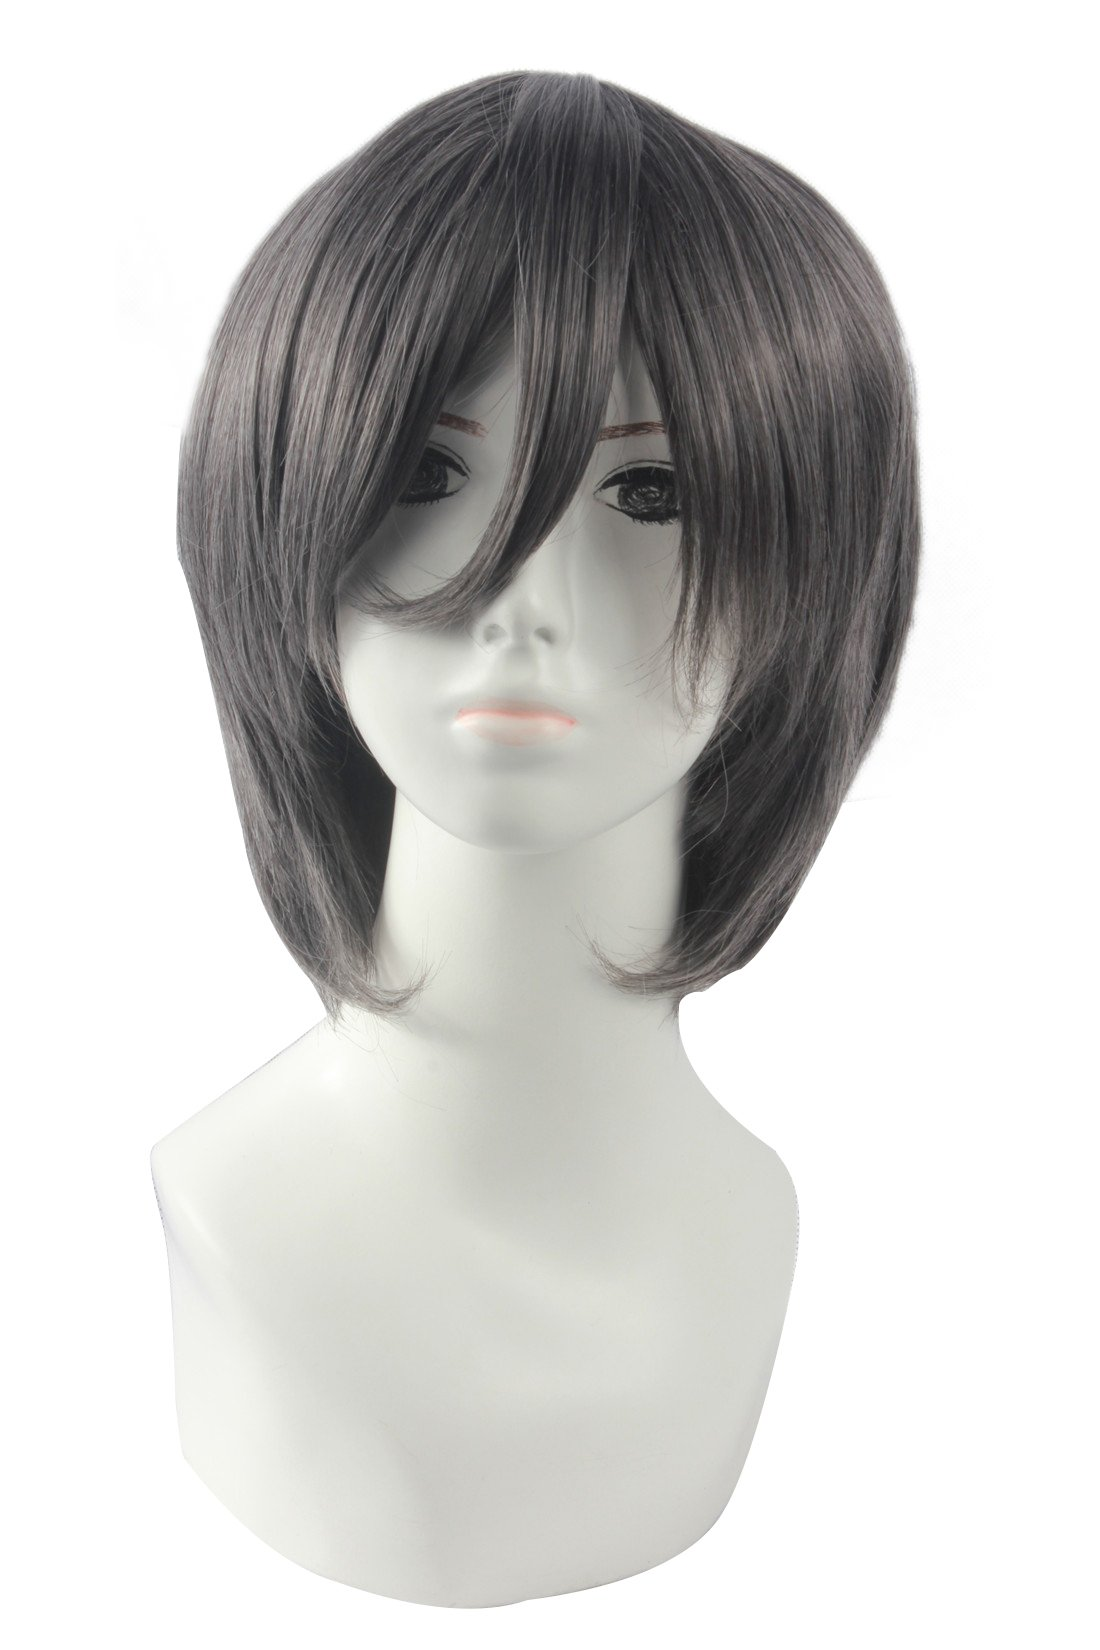 Icoser Anime Cosplay Party Wigs for Halloween Short Green Synthetic Hair 12'' 190g (Gray) by i-coser (Image #1)